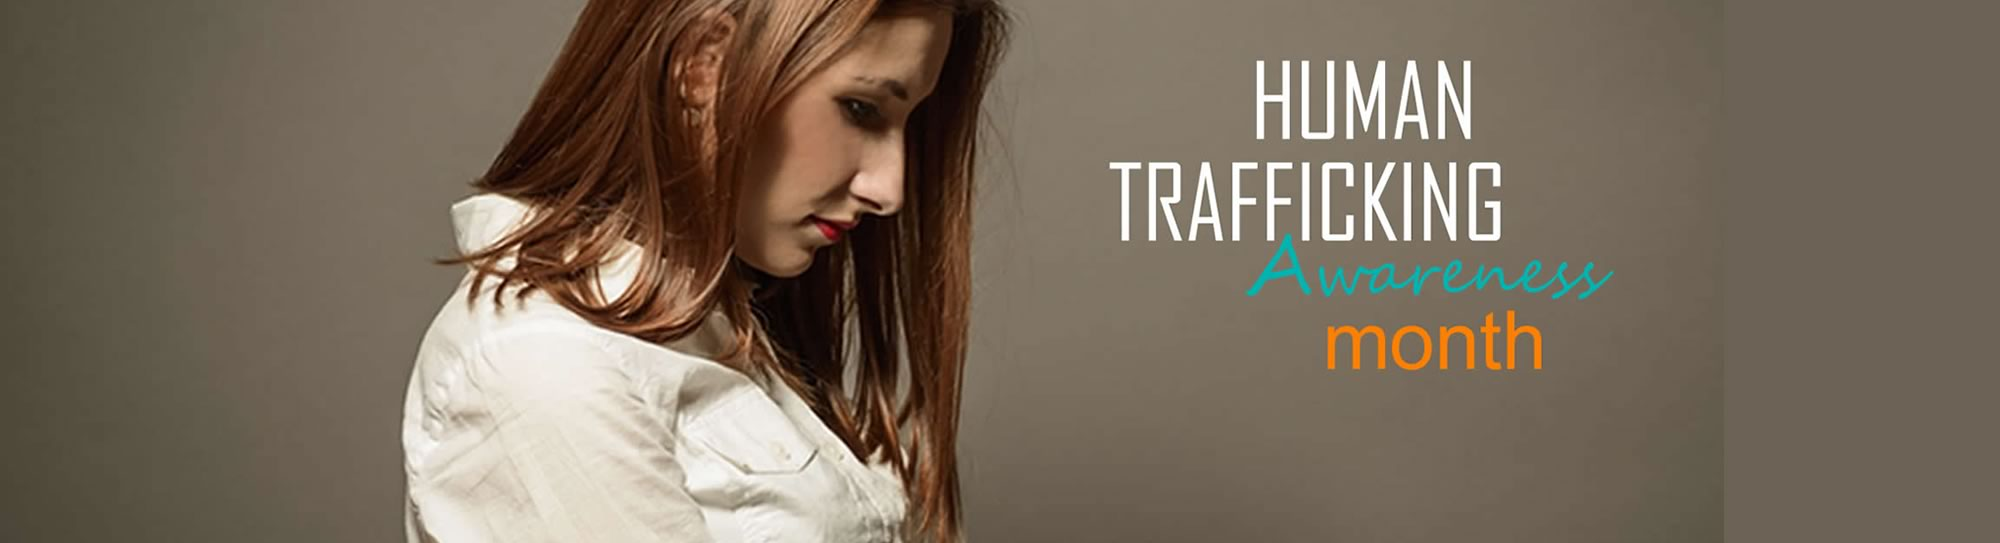 TRUST Trafficking Awareness Month